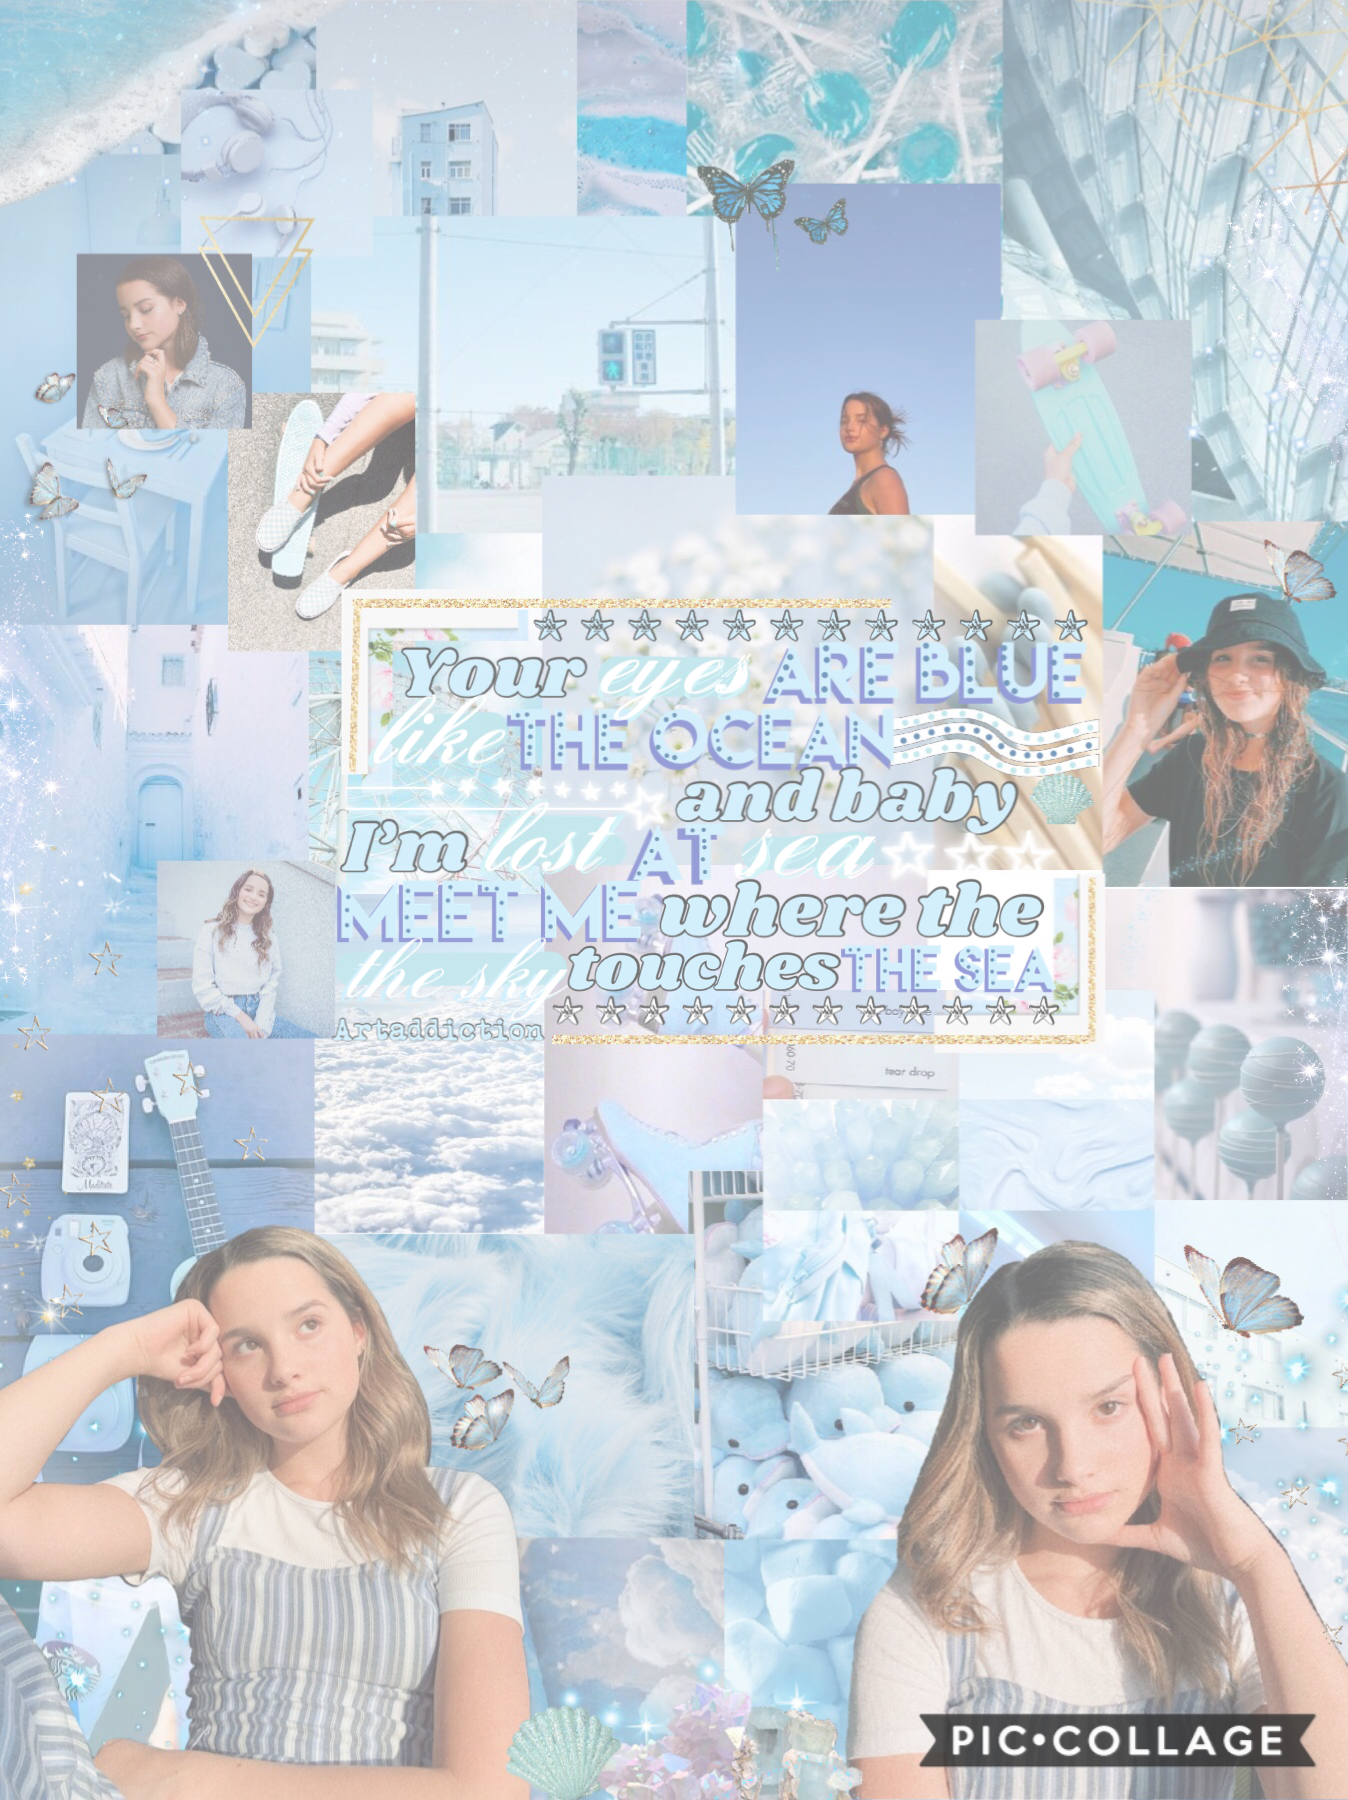 Here's my entry to Mary11am's collage contest,Make sure to check out her awesome collages 🦋💙💙